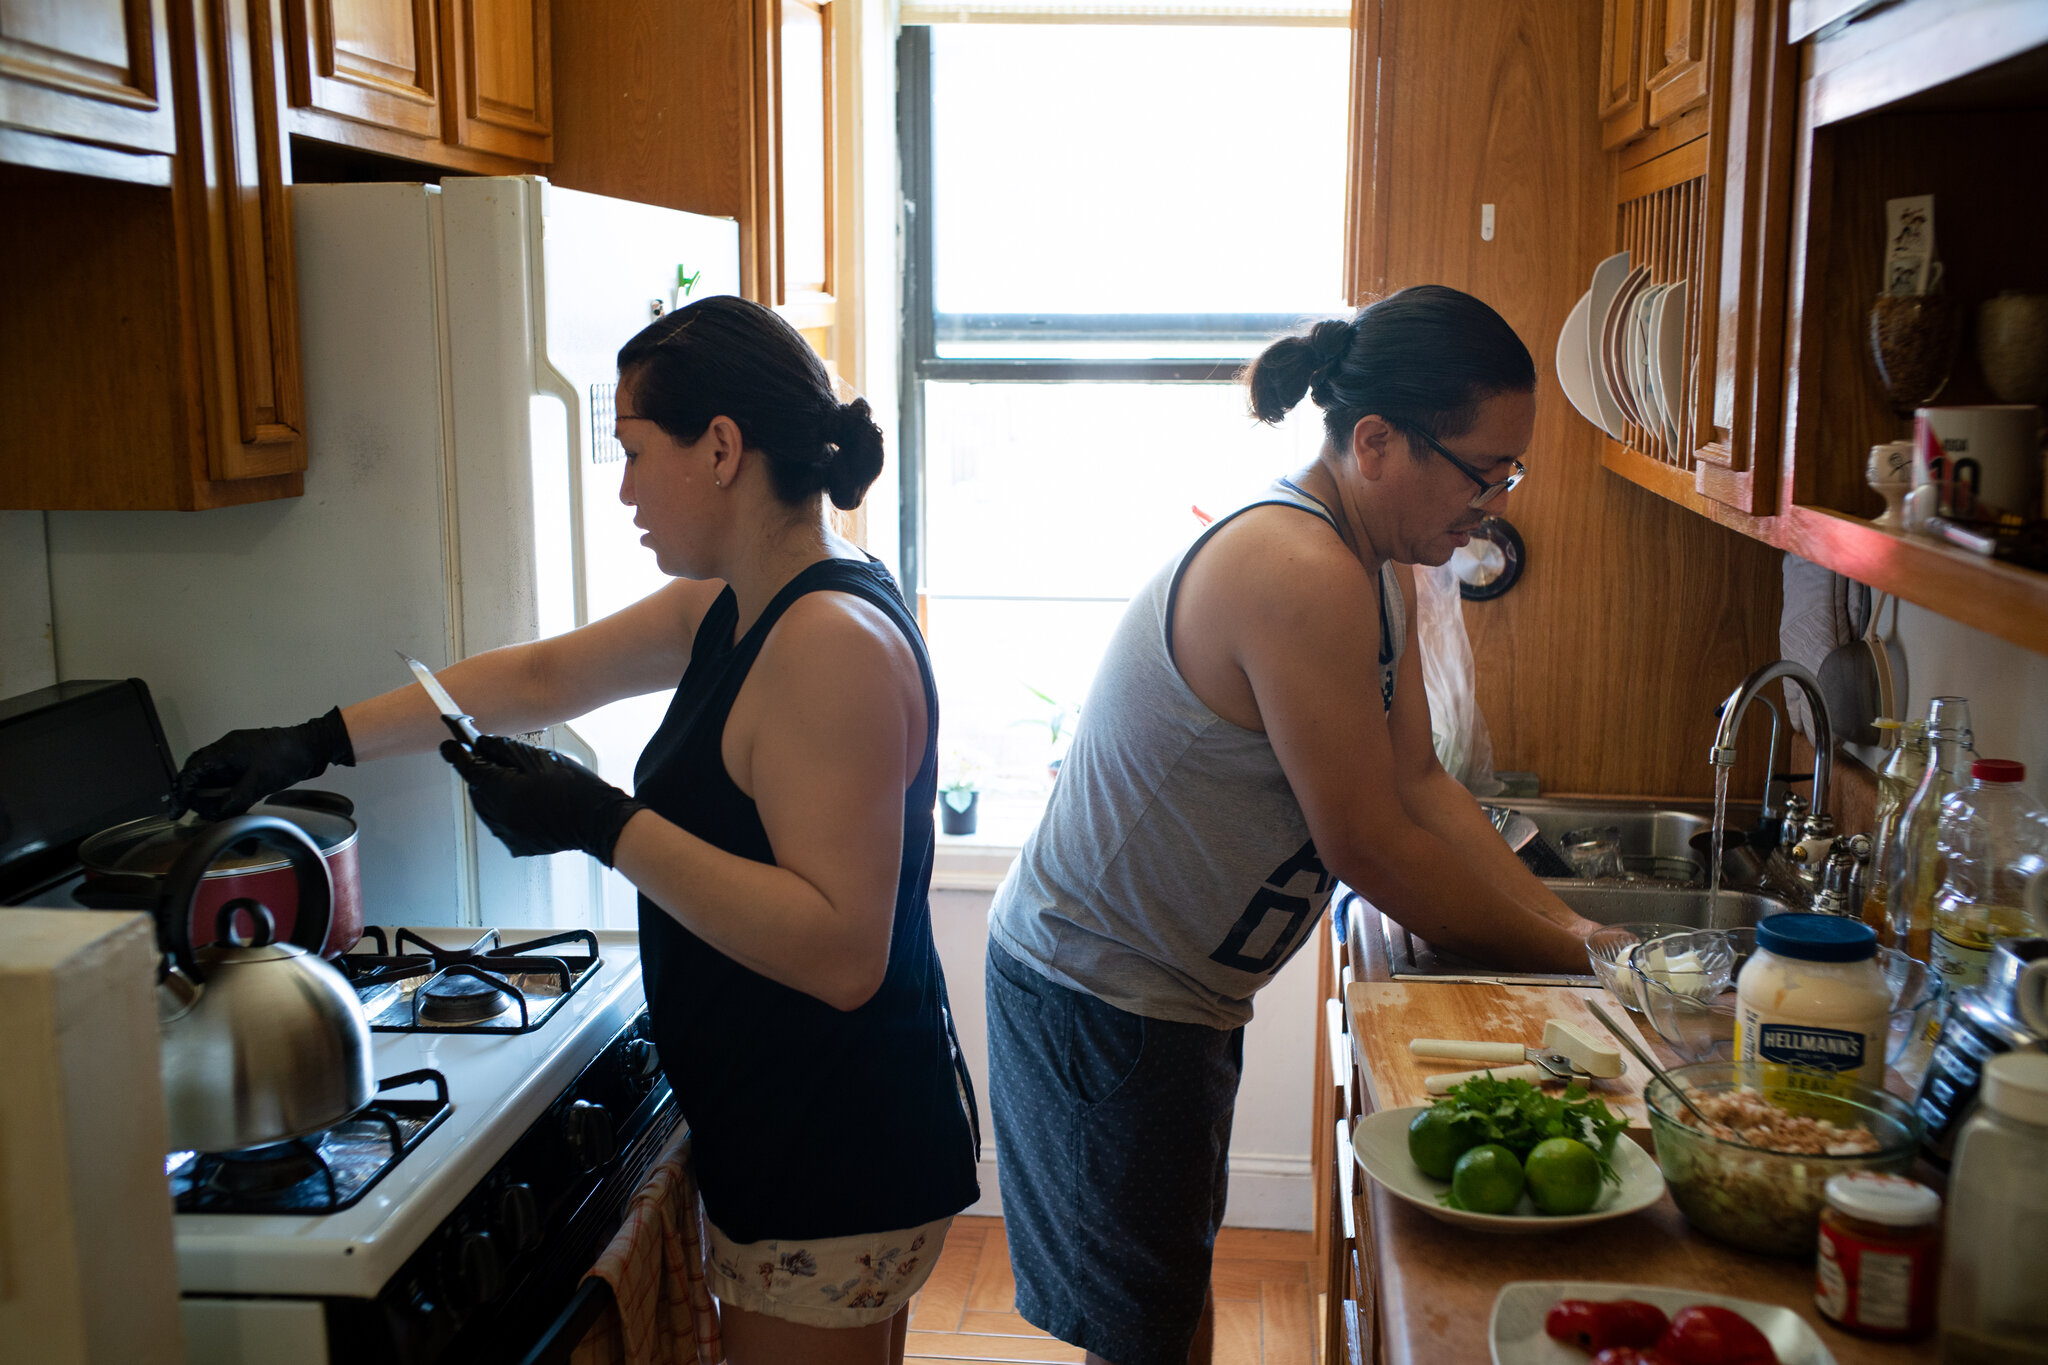 The picture was taken by the New York Time photographer while Jose and Leyla are making the meal with the food from Masbia Soup Kitchen in Brooklyn